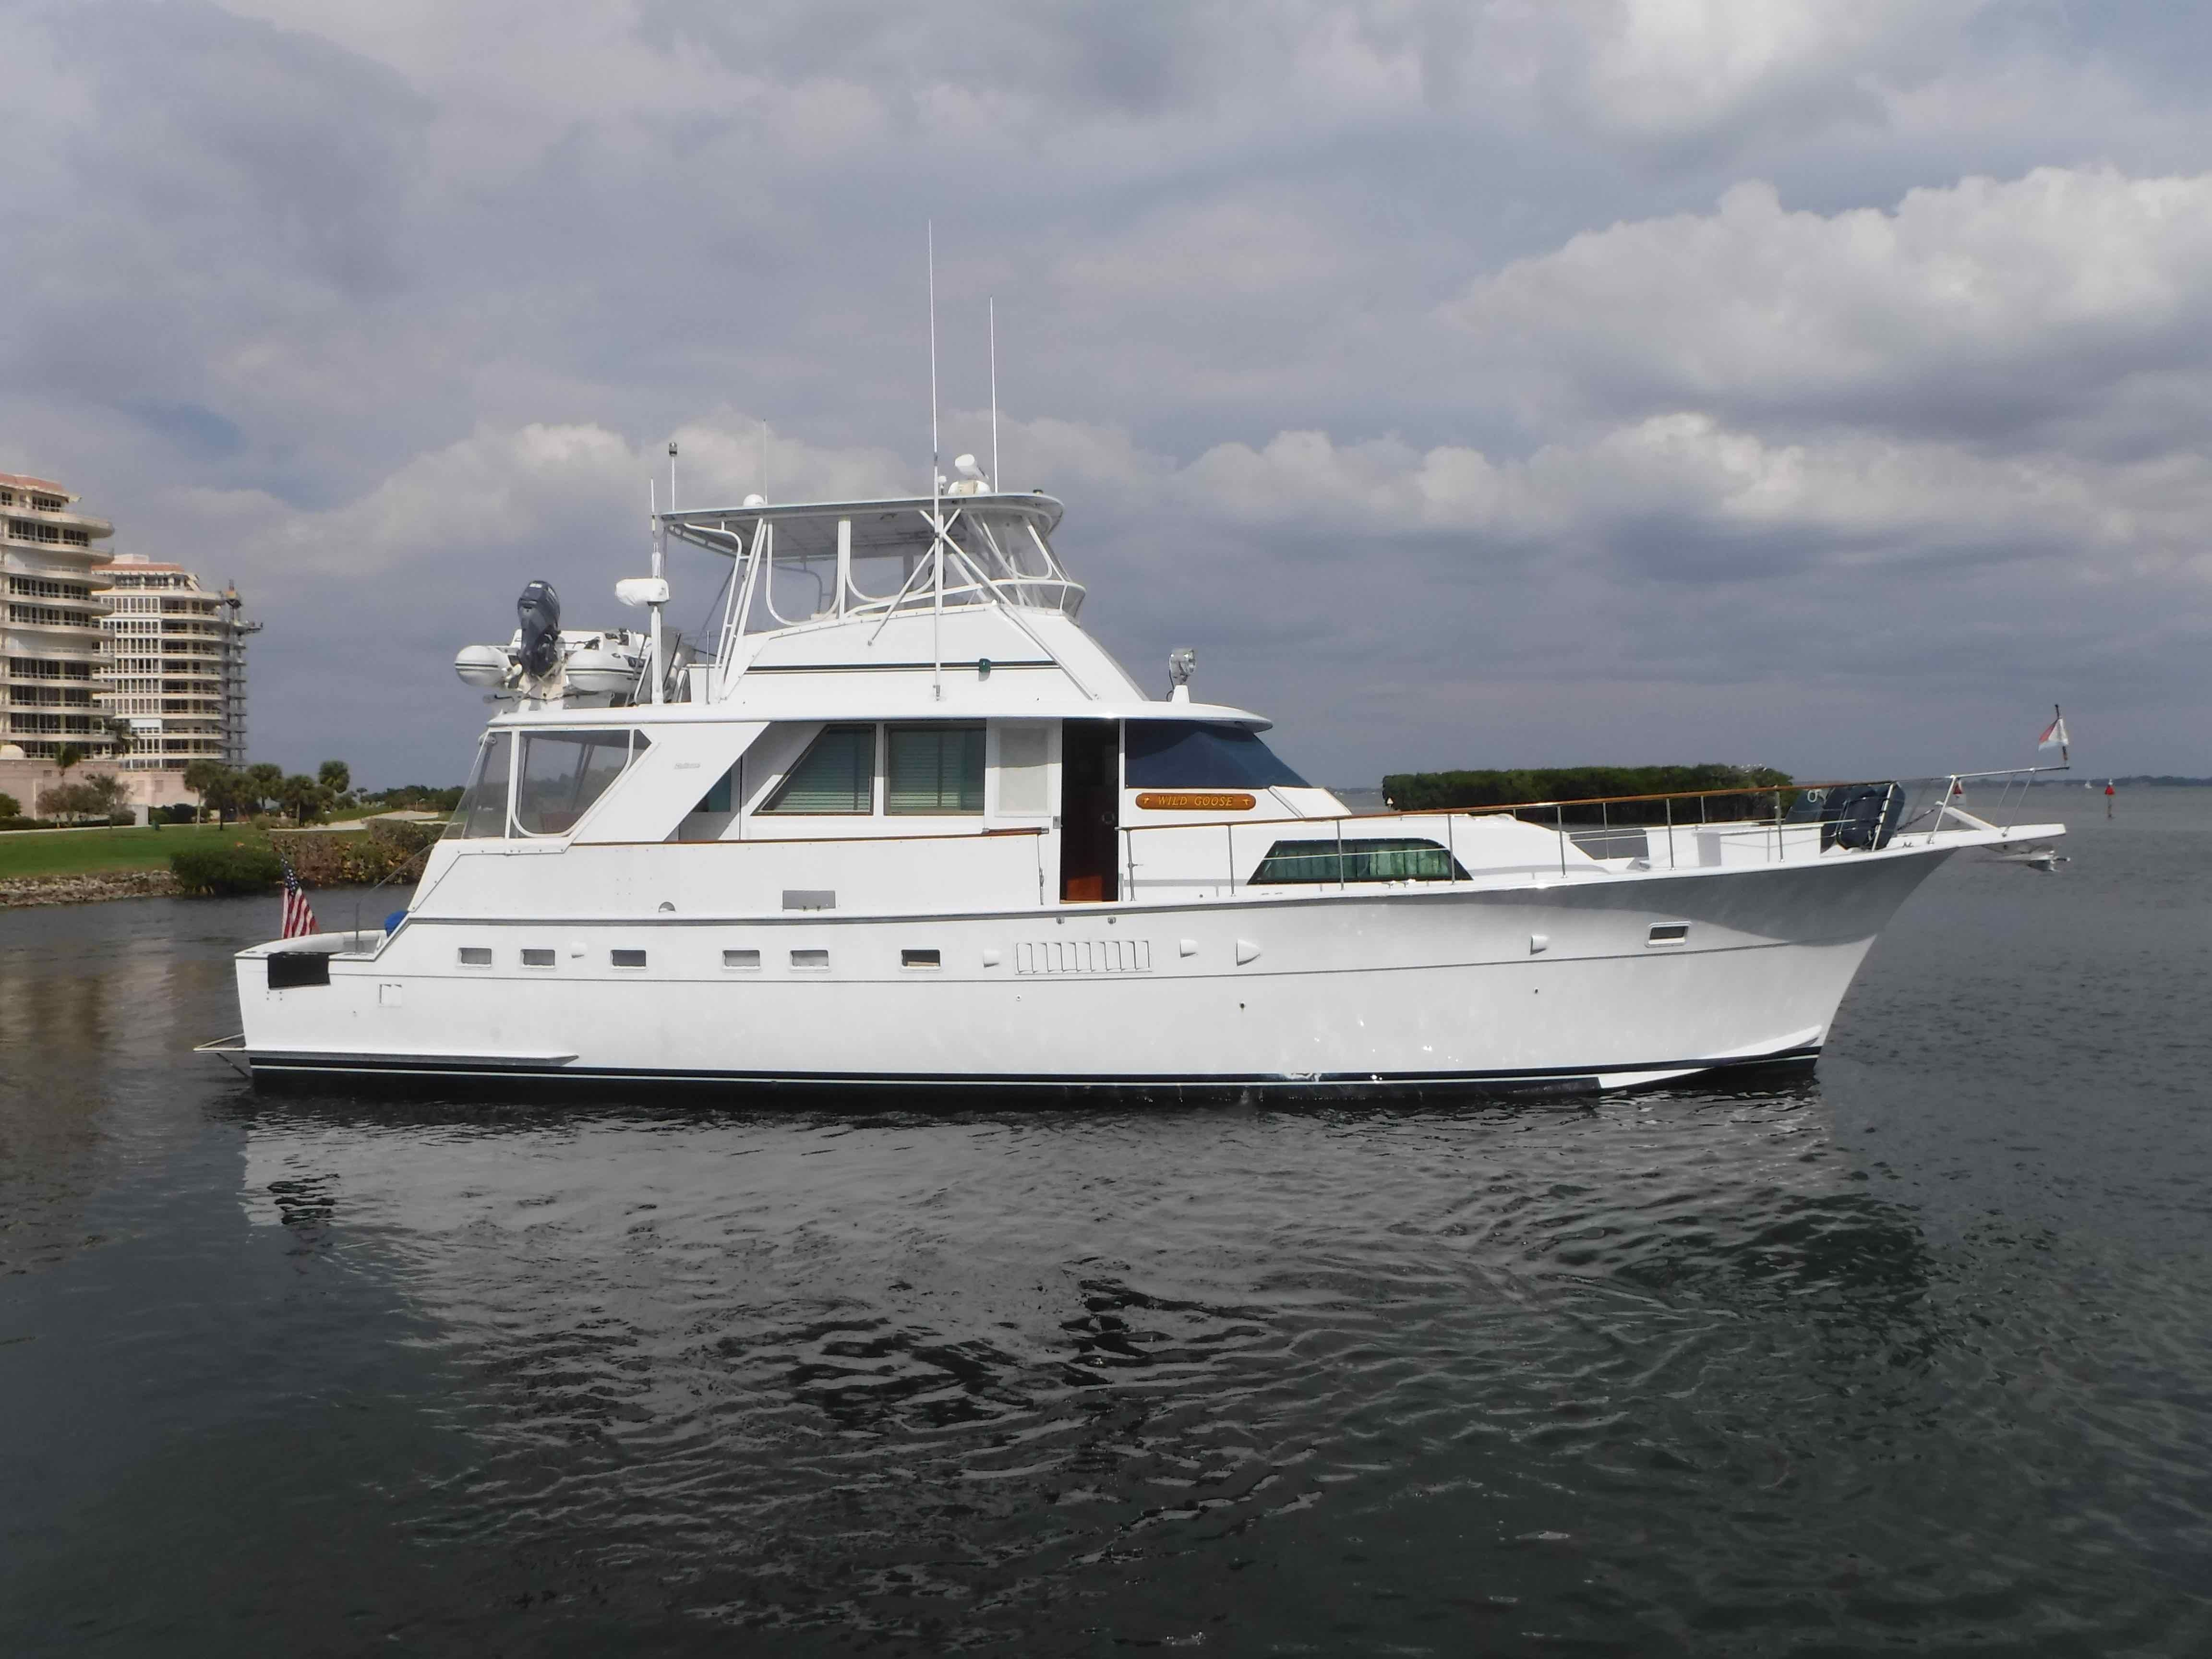 1977 Hatteras 58 Yacht Fisherman Power New And Used Boats